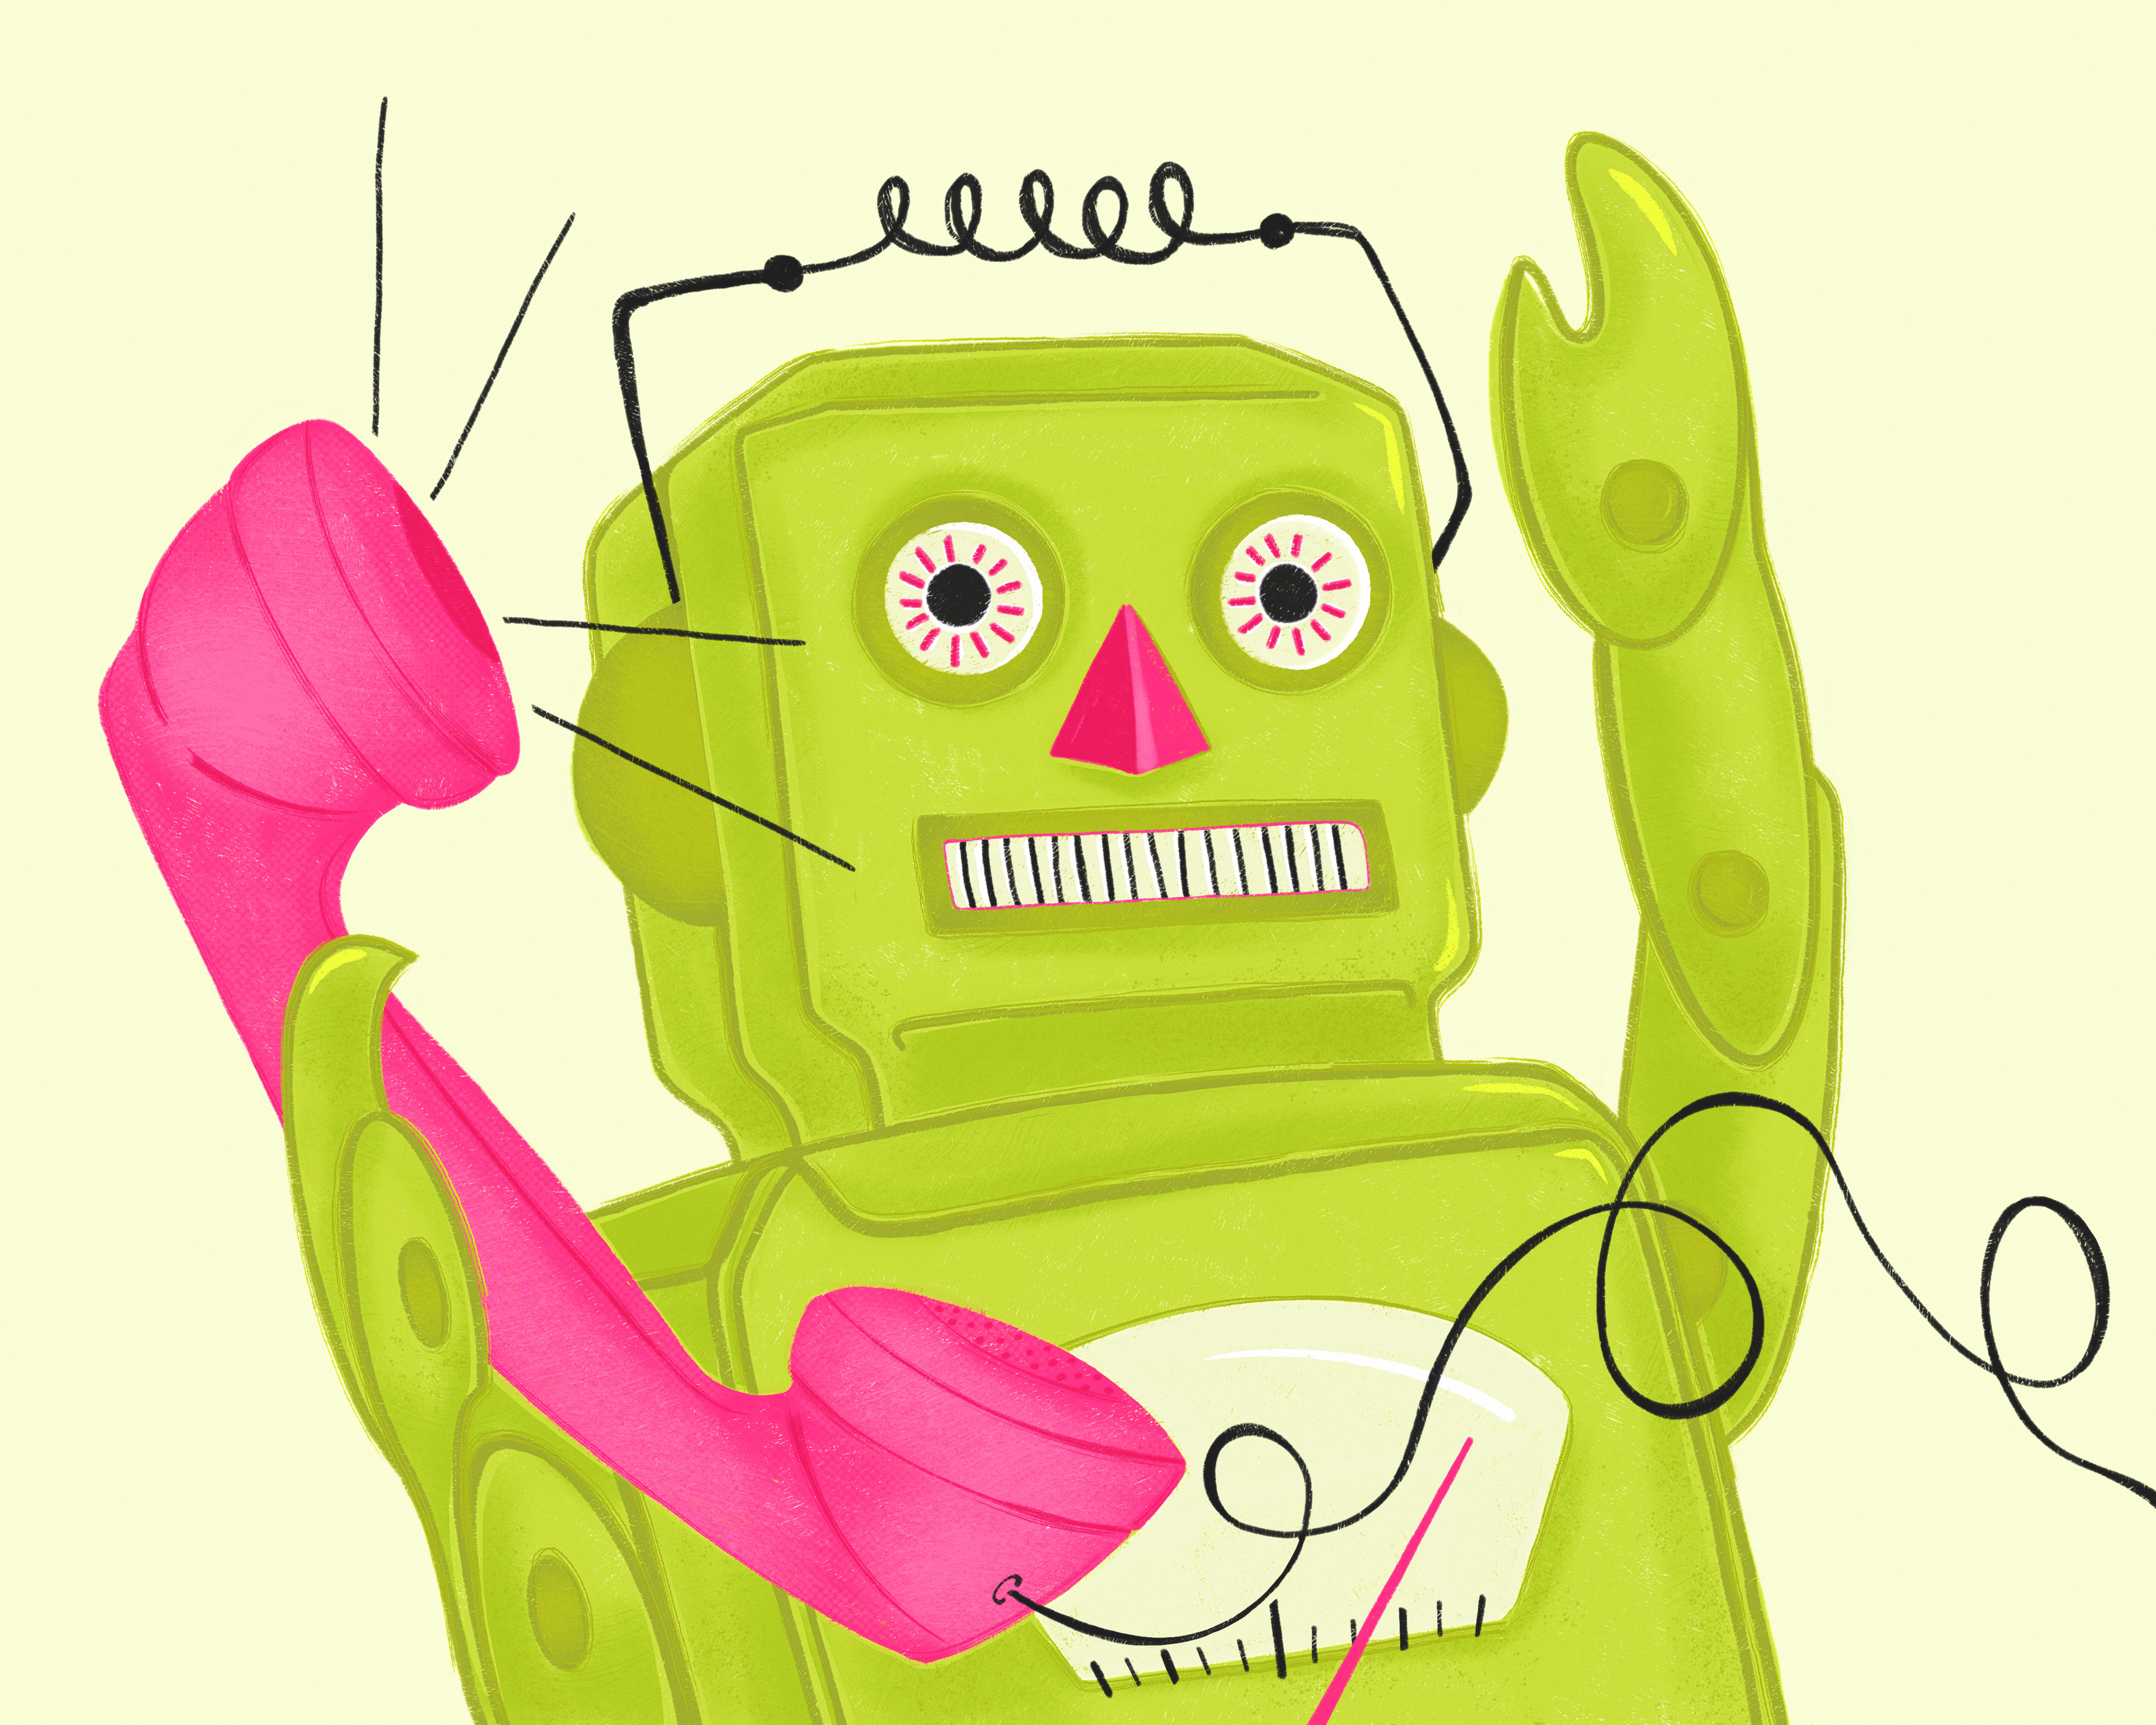 robocall-gettyimages-1181227666